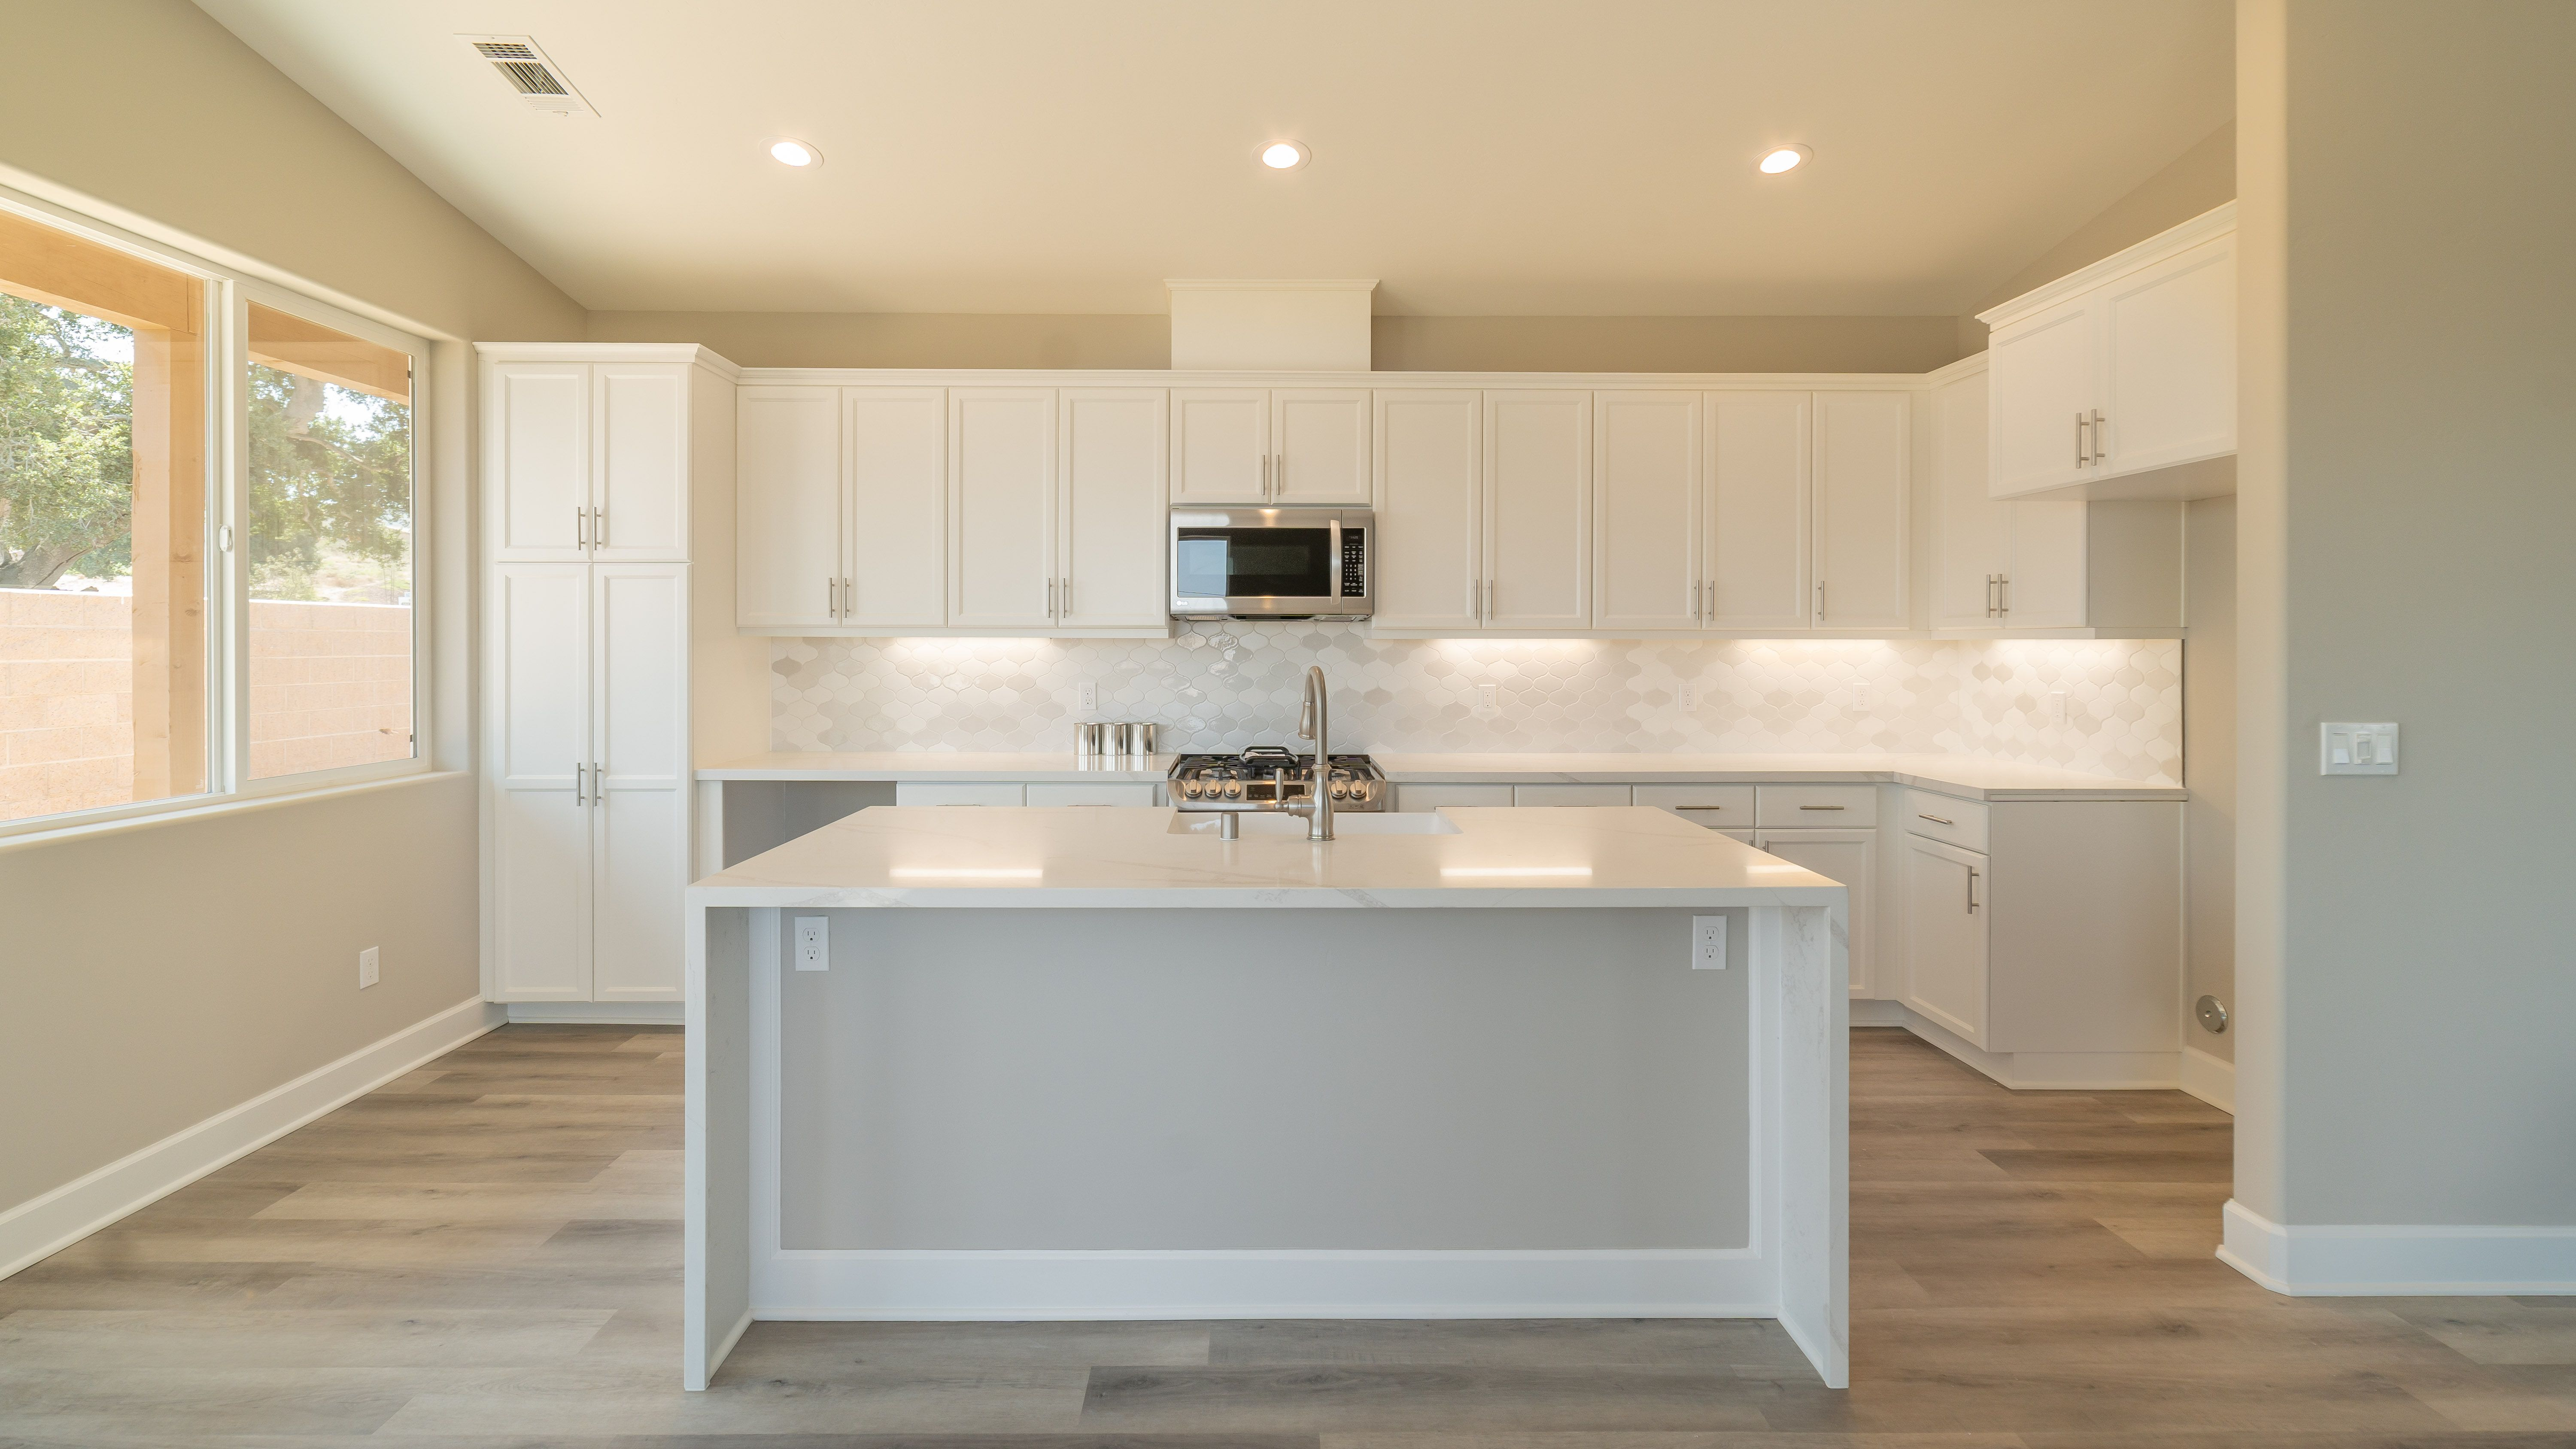 Kitchen featured in the Greenfield By Coastal Community Builders in Santa Barbara, CA